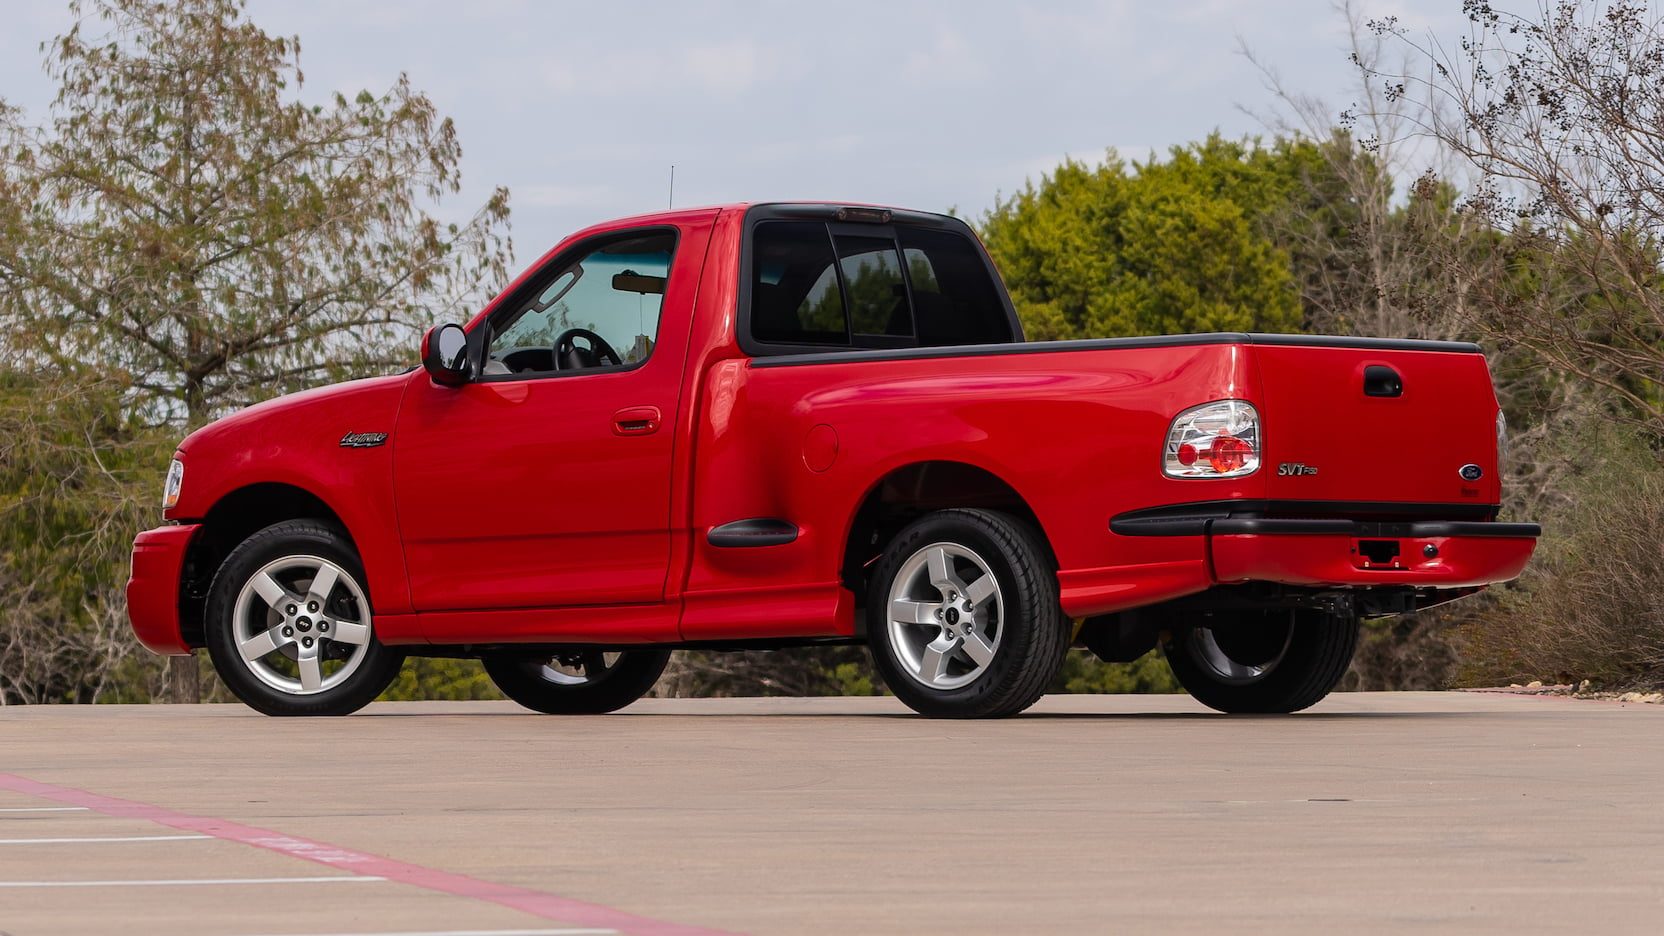 2002 Ford F150 SVT Lightning Pickup